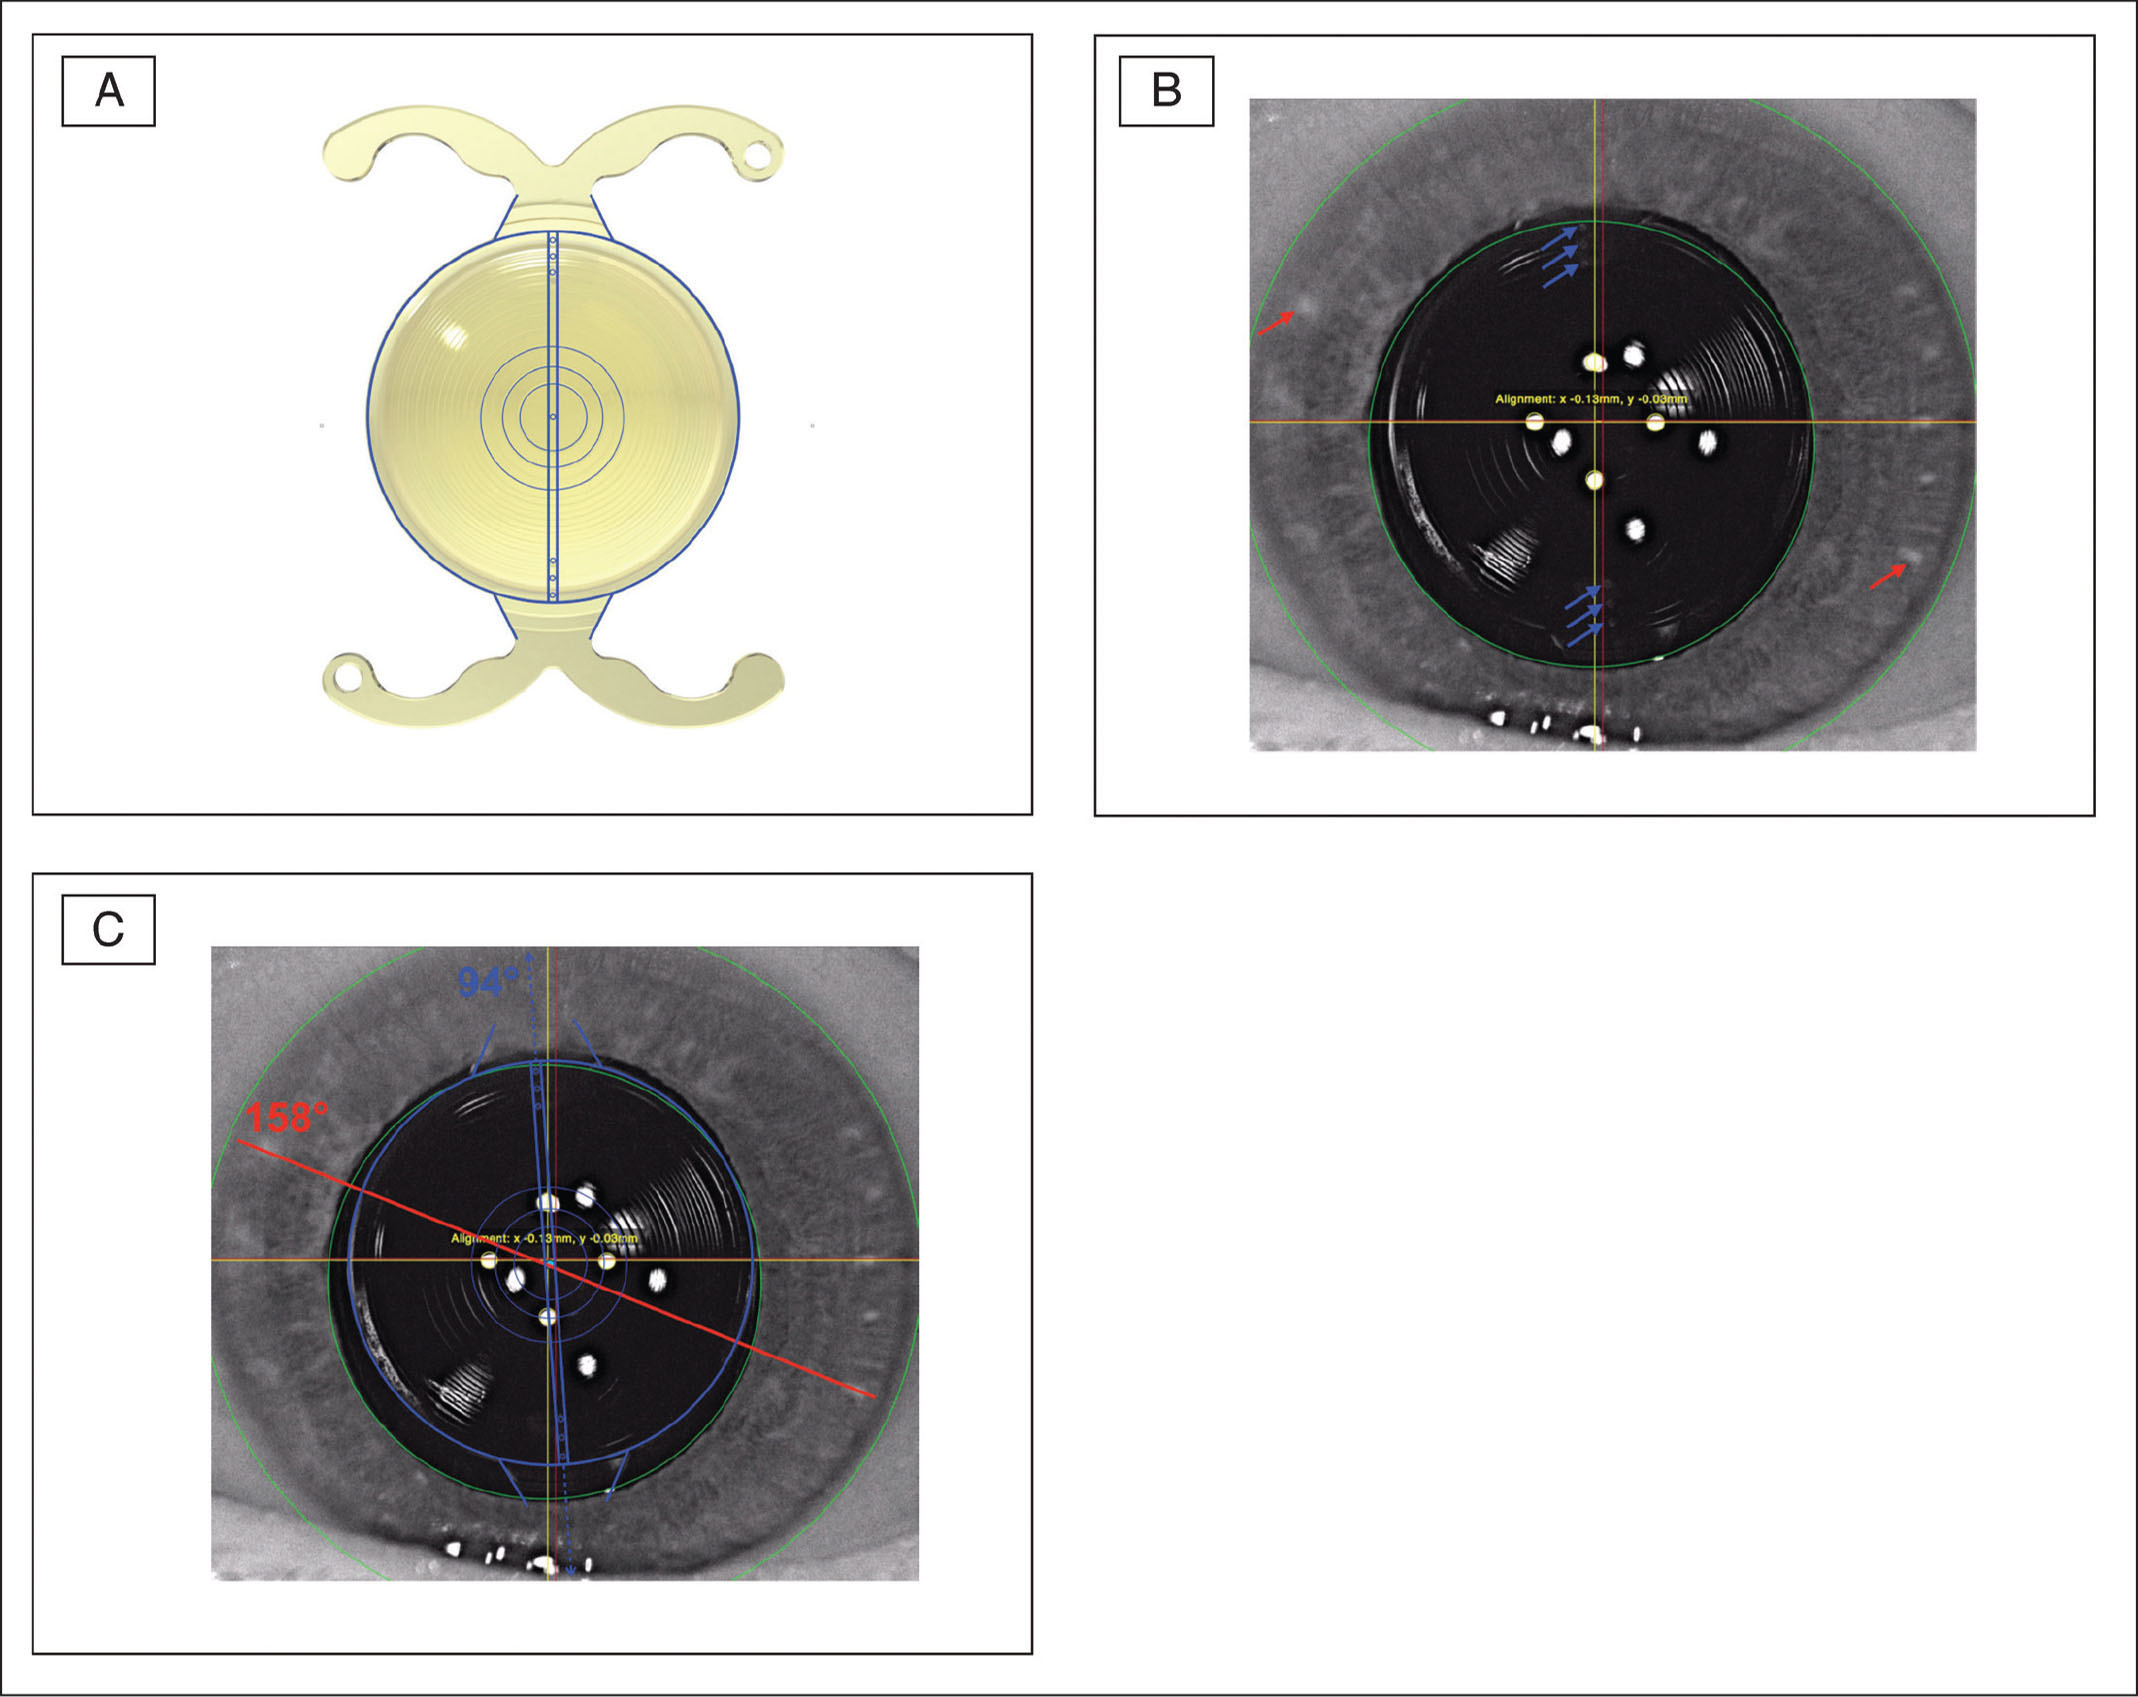 (A) Image of the trifocal toric intraocular lens (IOL) with overlying sketch used to evaluate rotational stability. (B) Postoperative frontal image (Galilei 6 Lens Professional; Ziemer, Port, Switzerland). Blue arrows indicate IOL axis marks, red arrows indicate investigator-defined iris landmarks. (C) Postoperative frontal image (Galilei 6), superimposed with IOL sketch after adjusting position and angle.